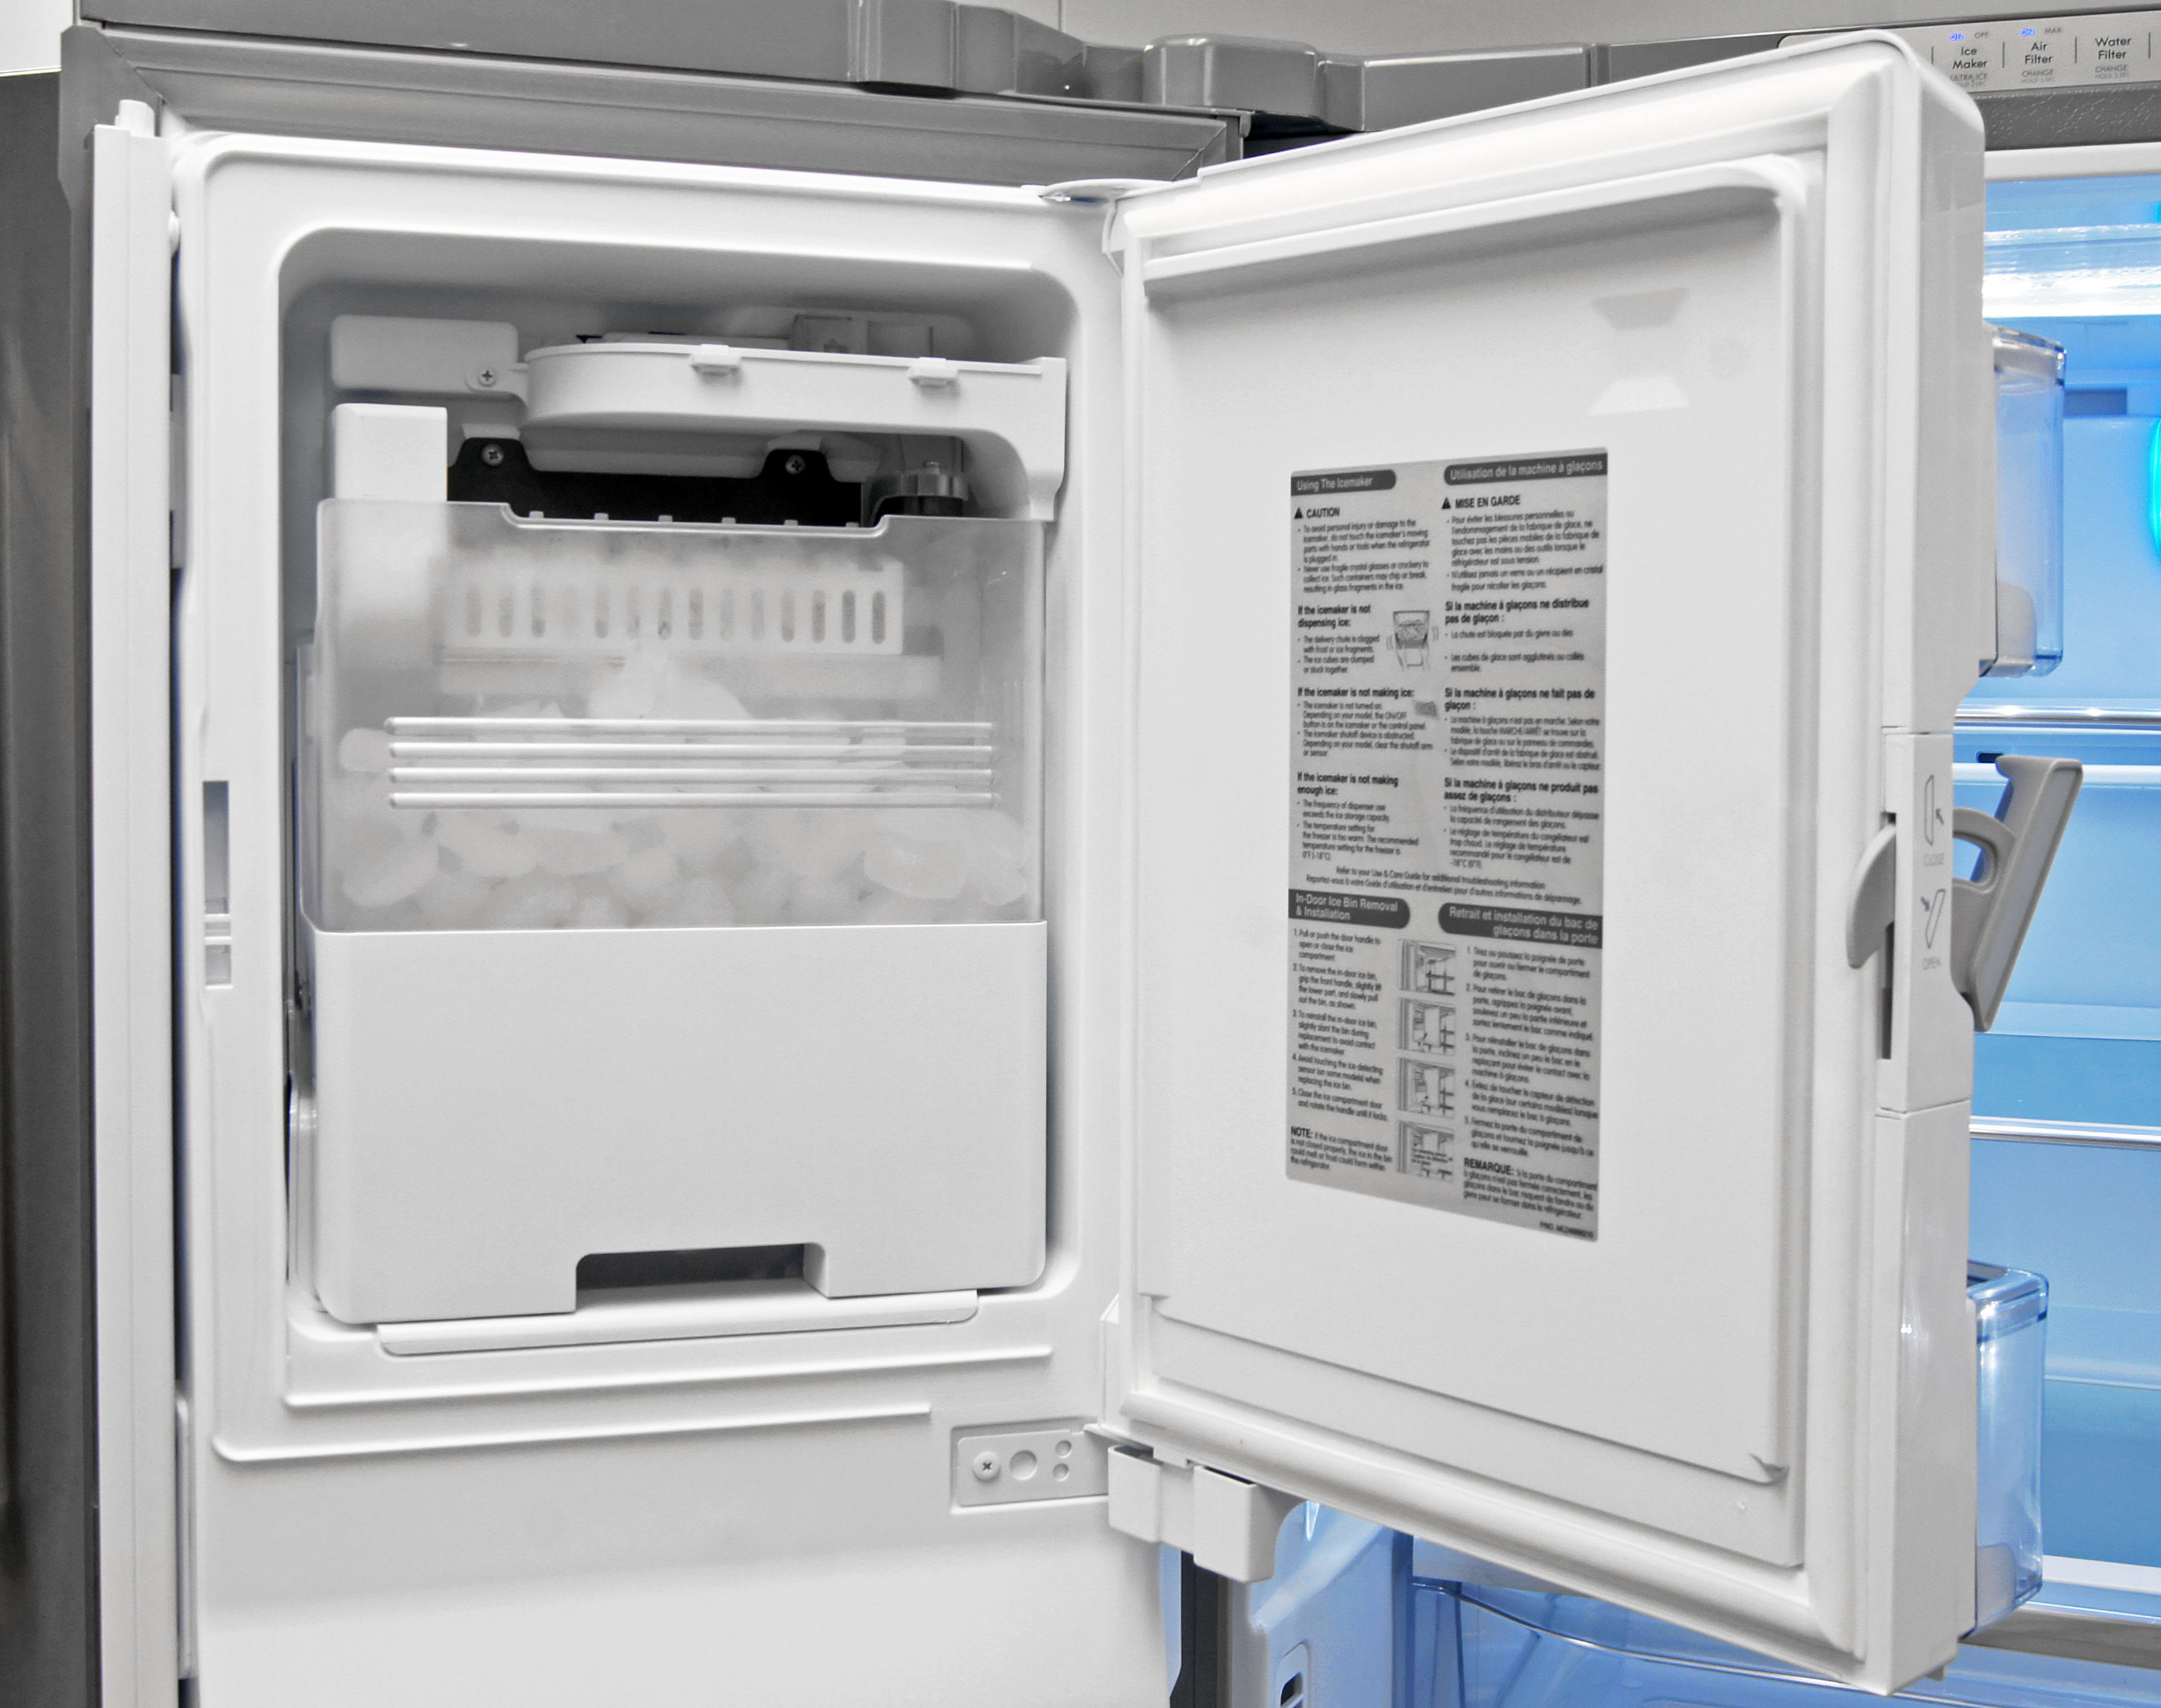 The Kenmore Elite 74033's door-mounted icemaker hold plenty of cubes while taking up as little space as possible.